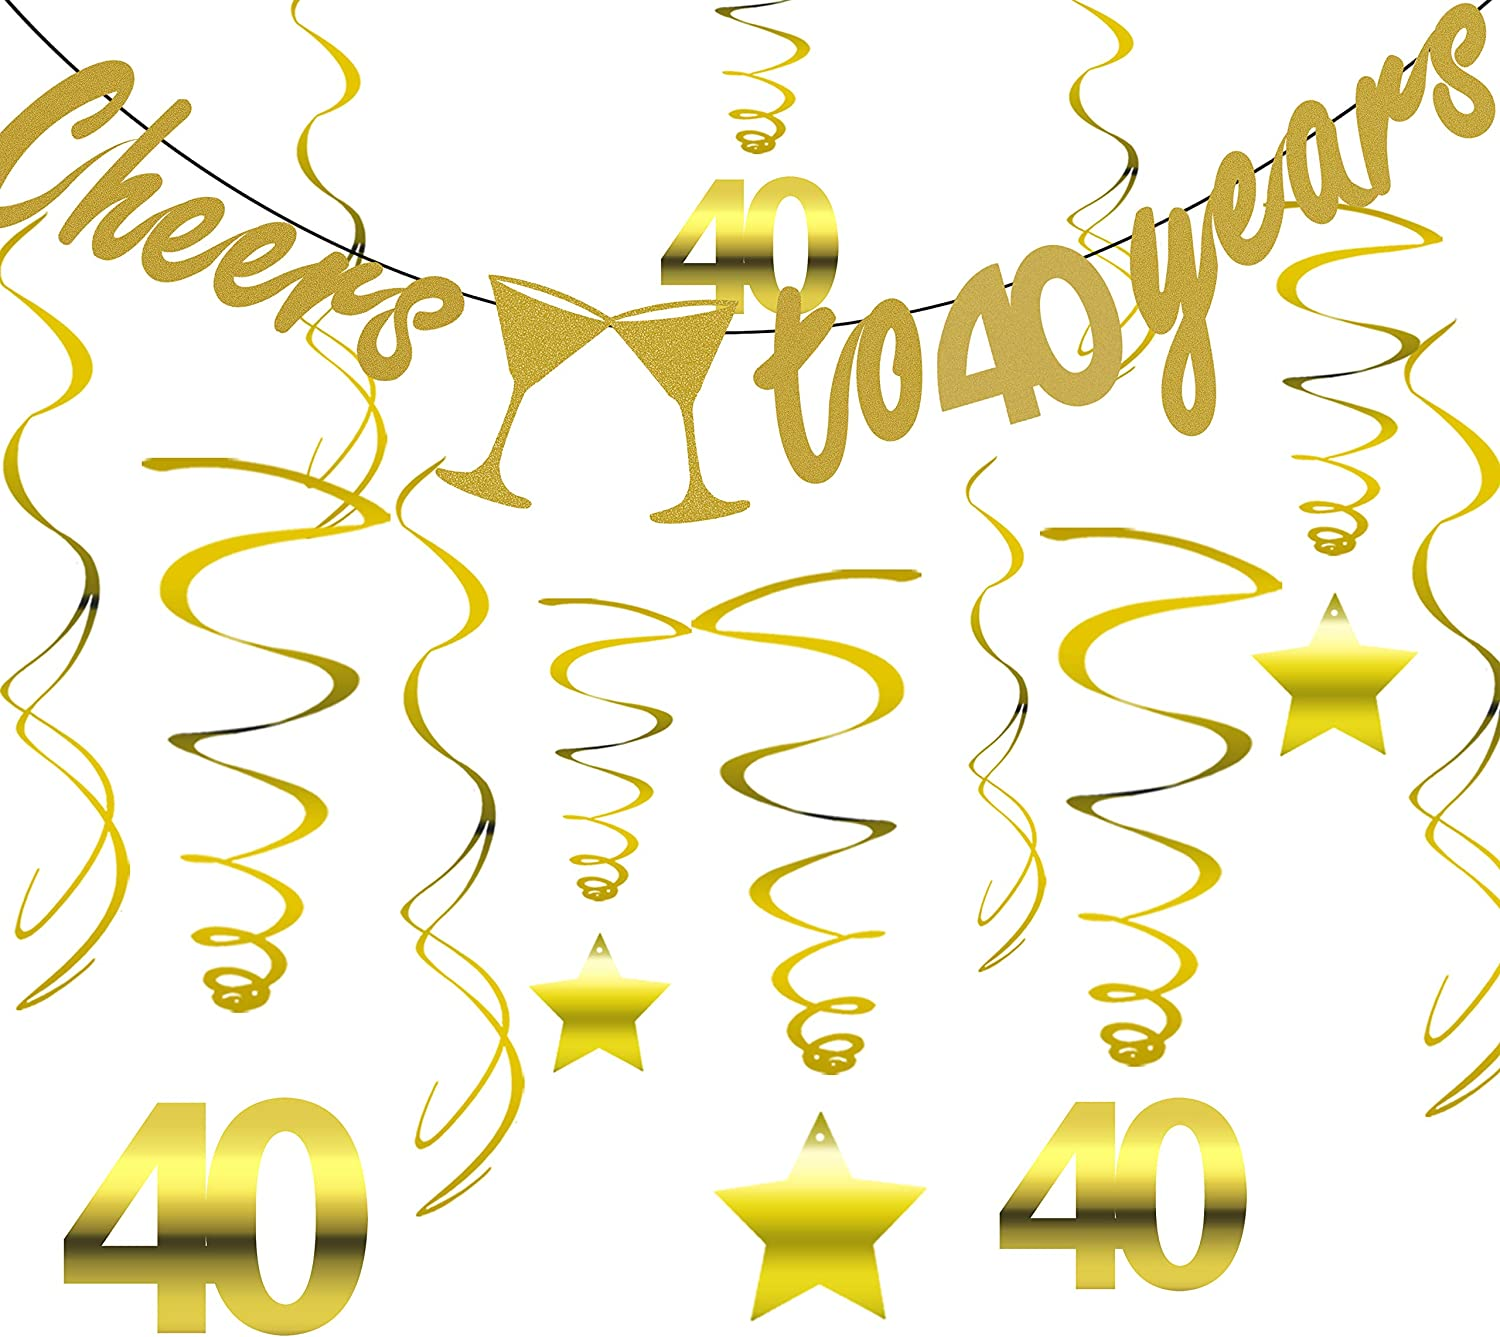 Gold 40th Birthday Party Decorations KIT - Cheers to 40 Years Banner, Sparkling Celebration 40 Hanging Swirls, Perfect 40 Years Old Party Supplies 40th Anniversary Decorations